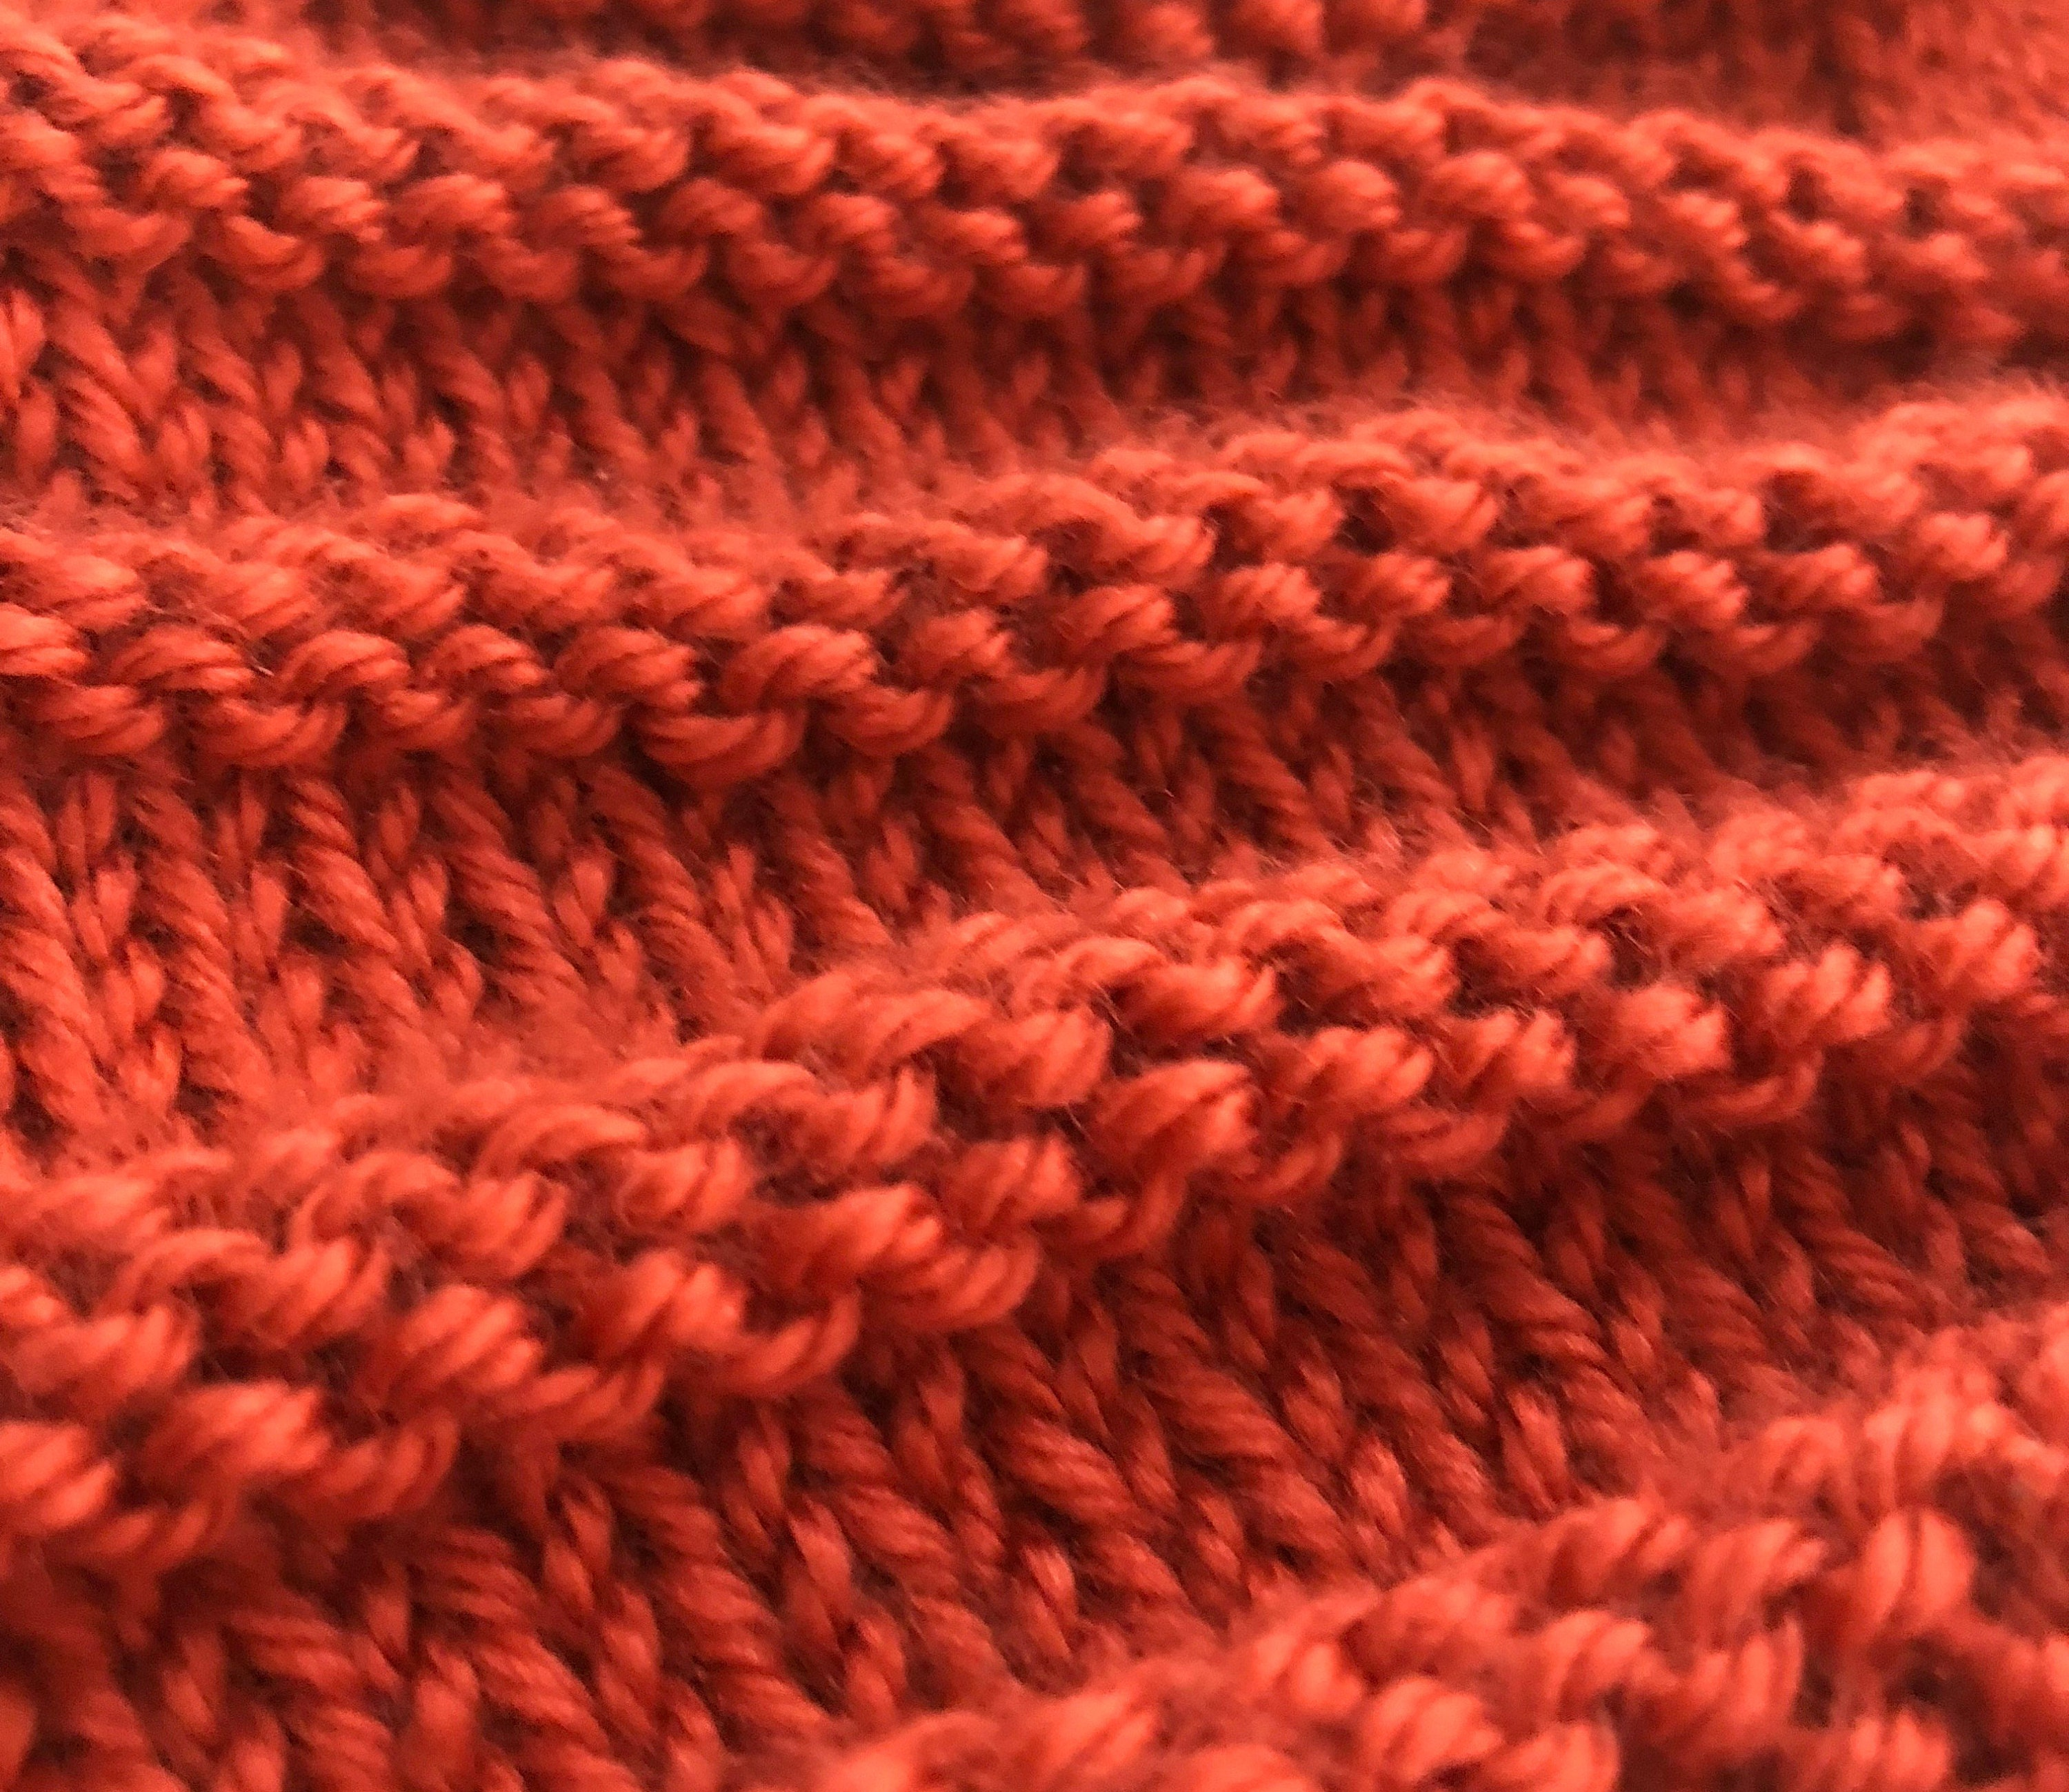 Close up detail of knitted hat